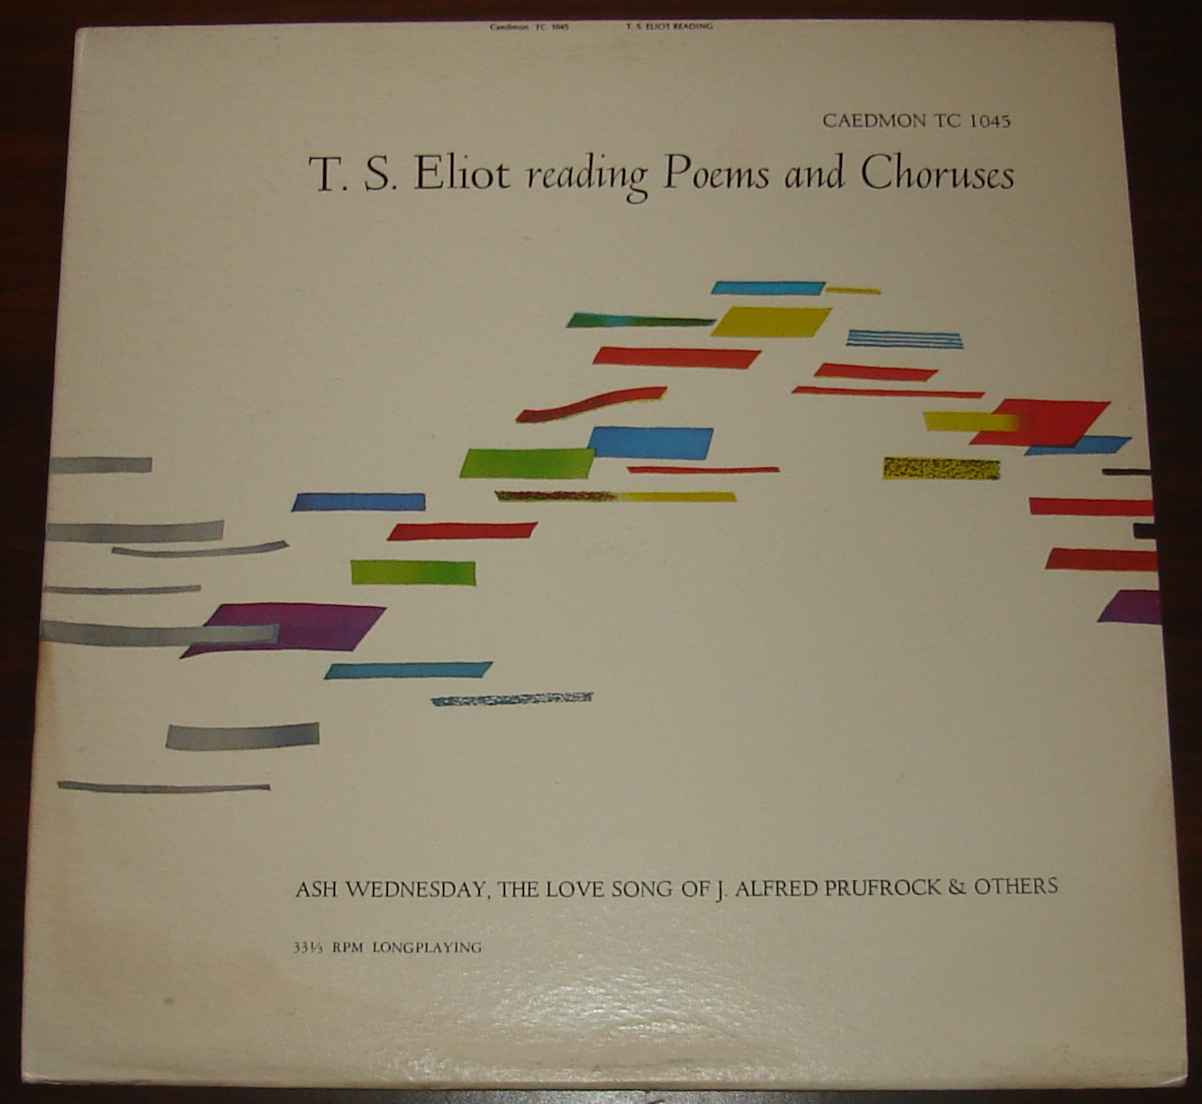 T.S. Eliot reads his own poetry